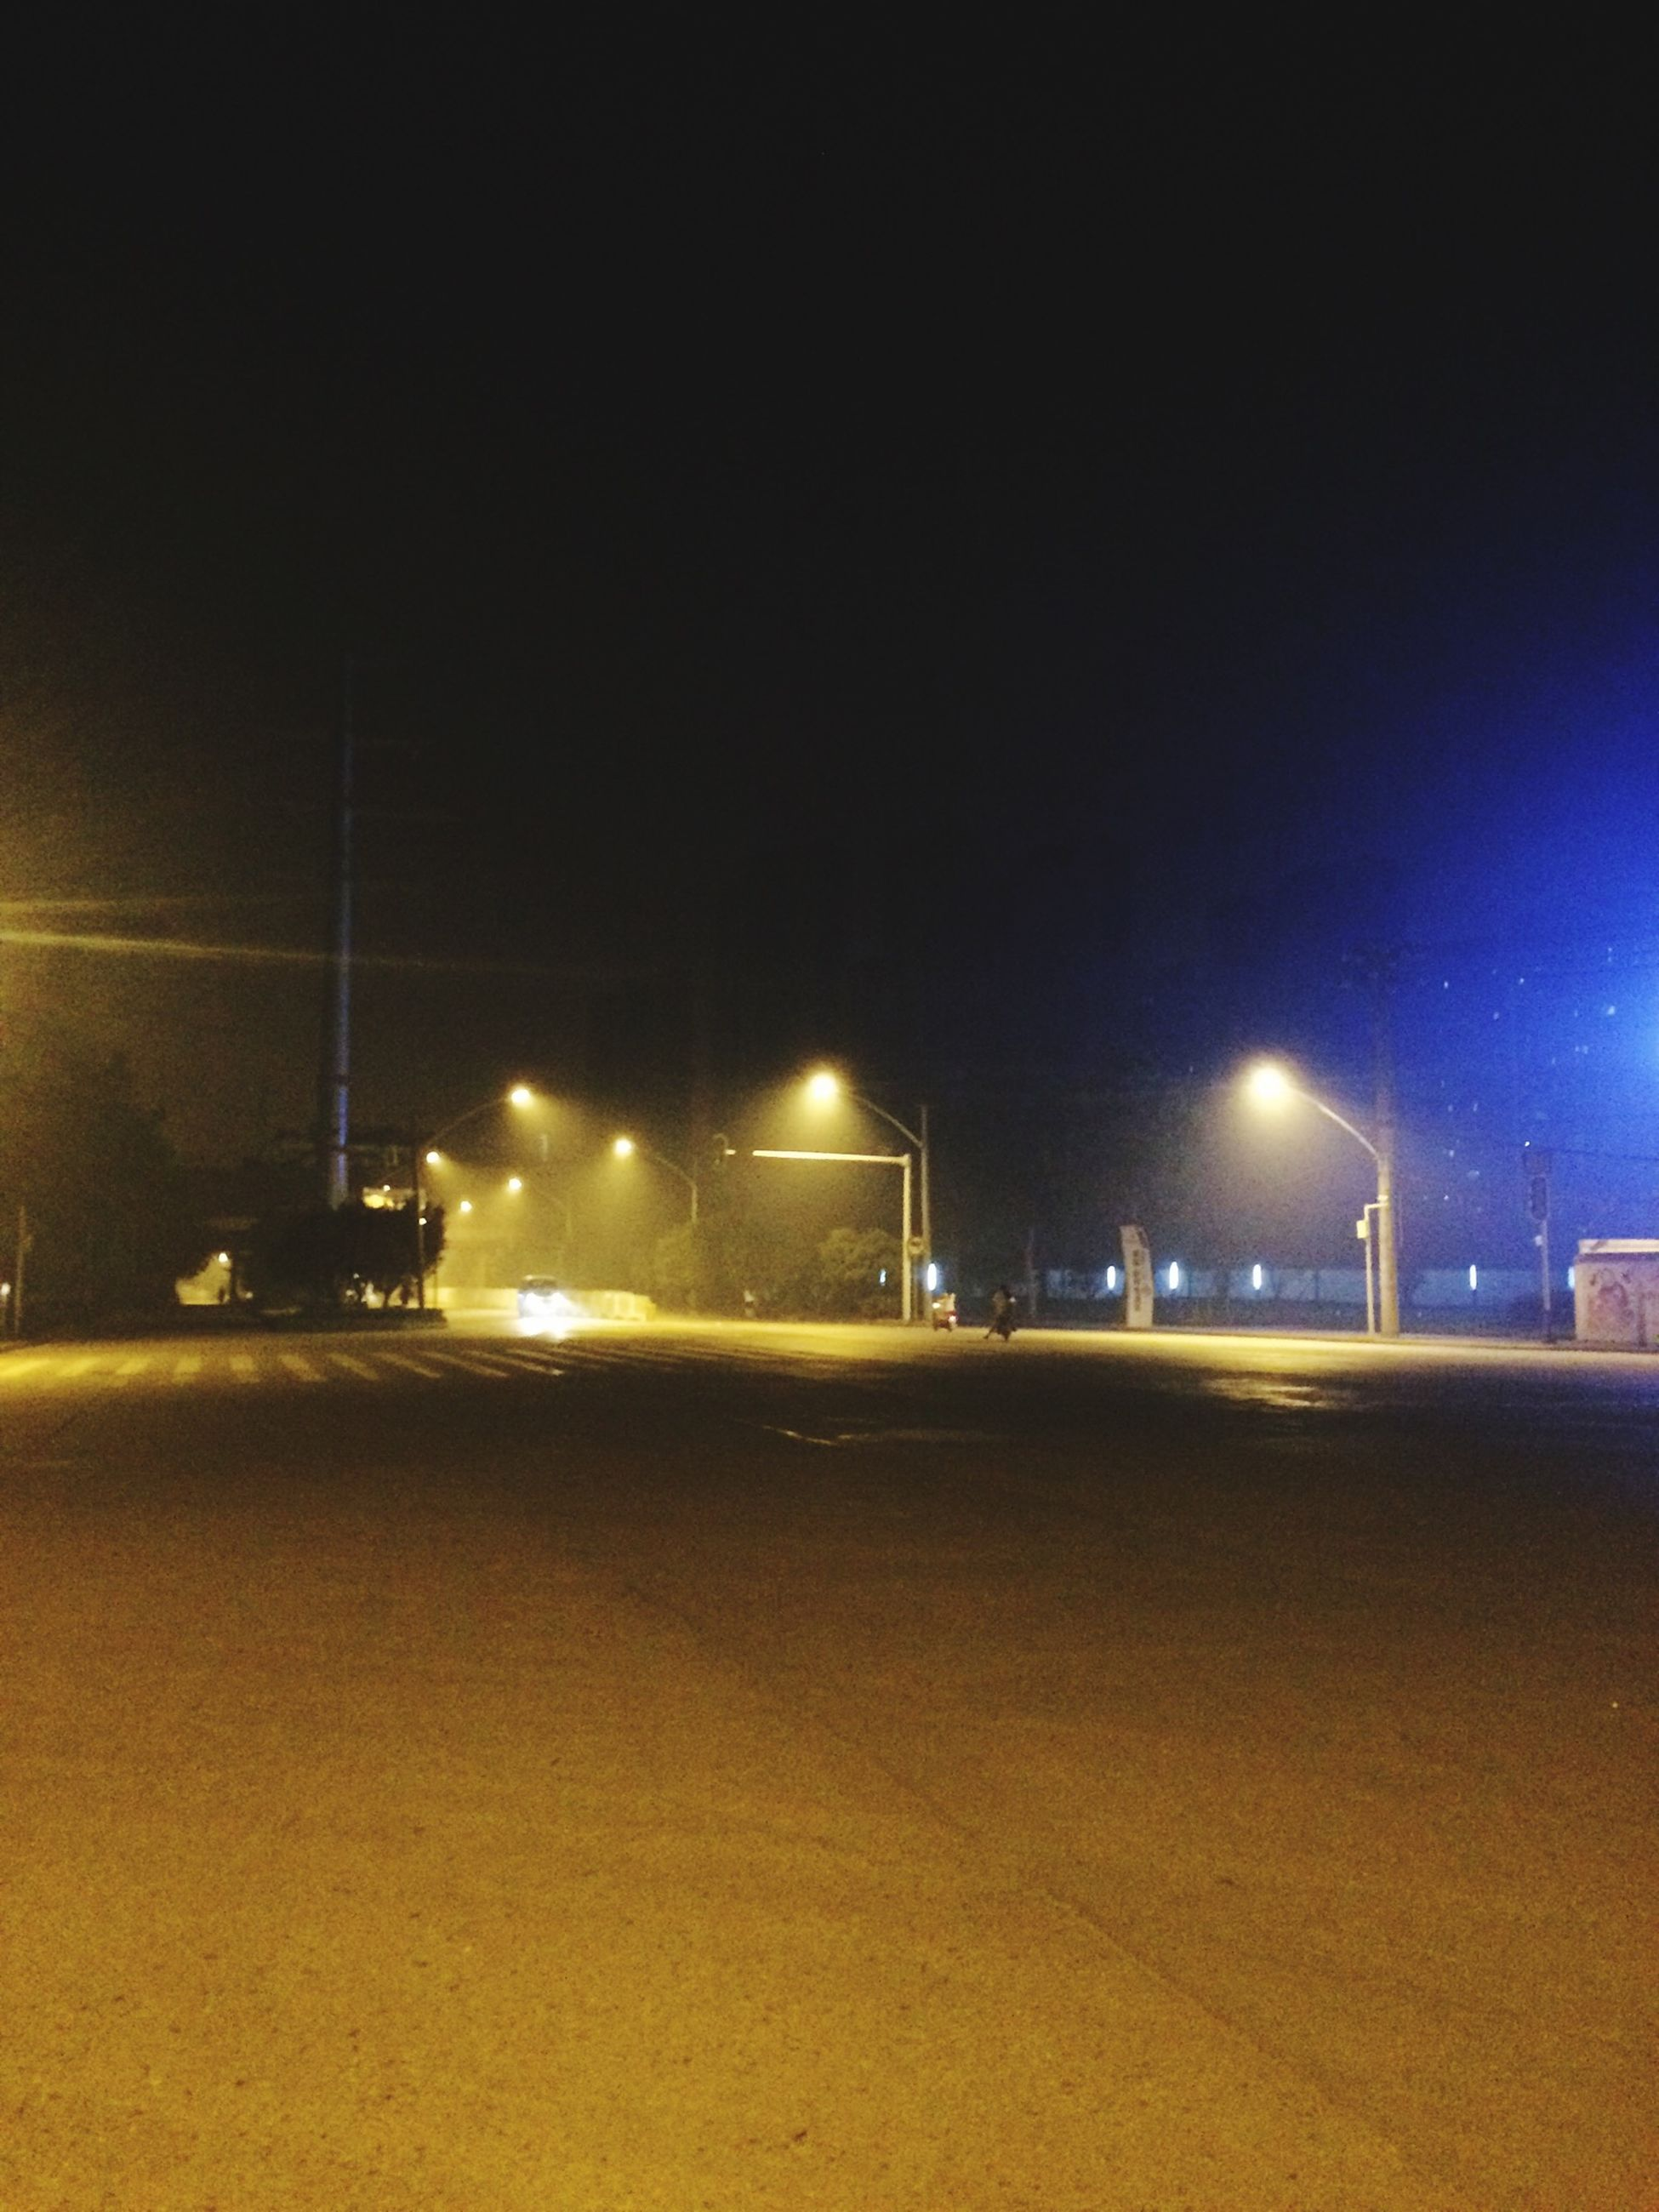 illuminated, night, street light, lighting equipment, transportation, copy space, clear sky, street, road, light - natural phenomenon, empty, sky, outdoors, the way forward, electric light, mode of transport, electricity, no people, city, dark